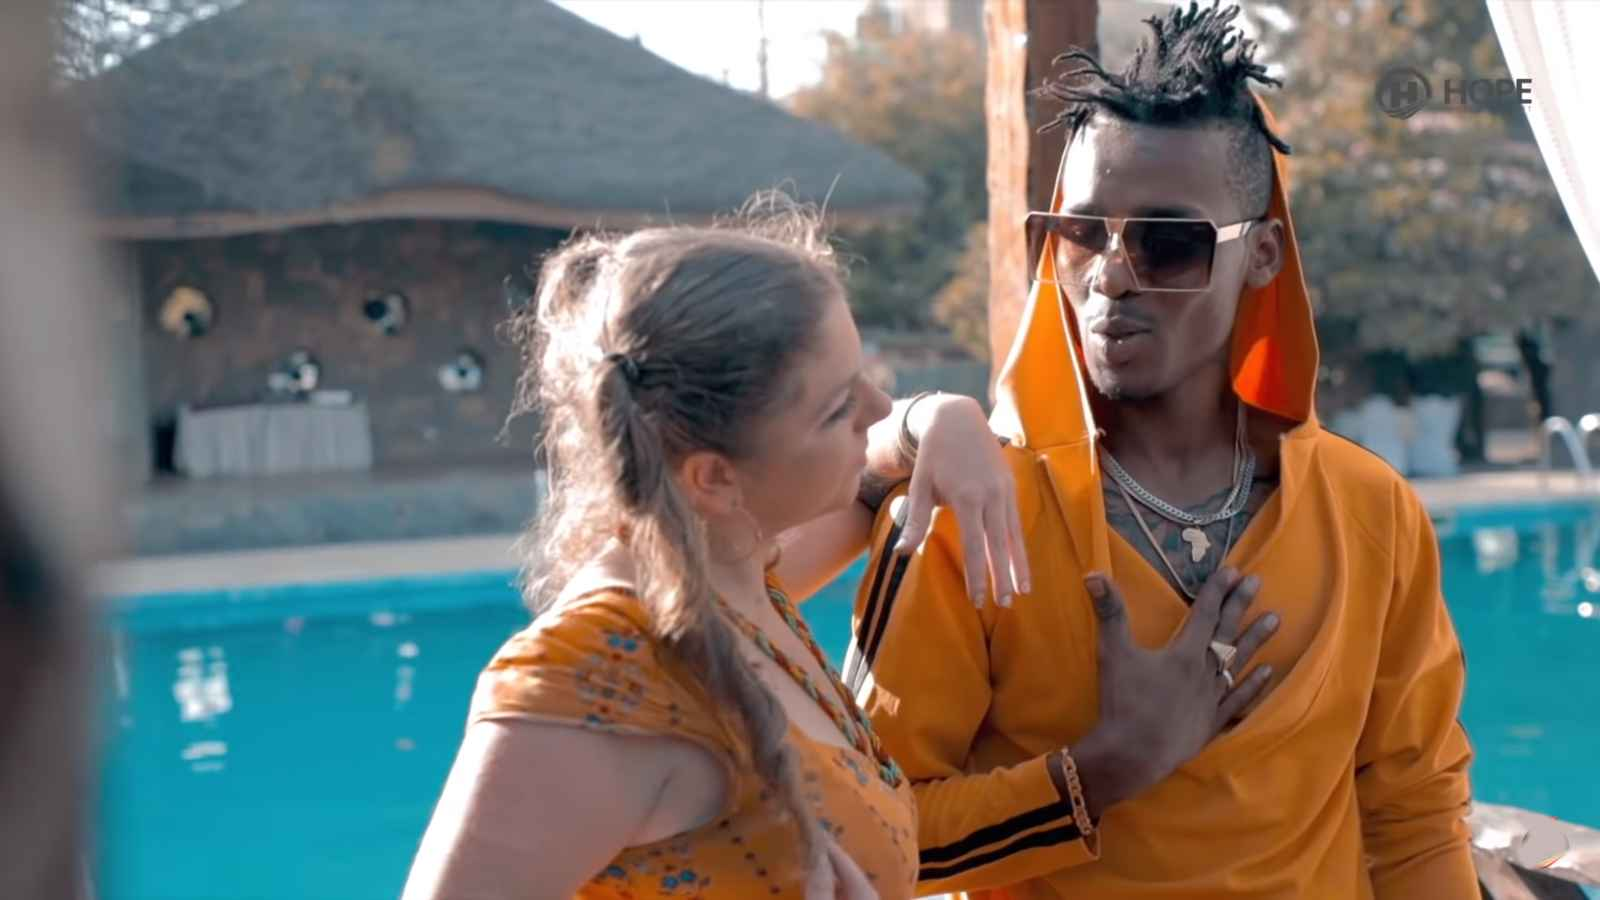 90 Day Fiance star Ariela starred in an Ethiopian music video